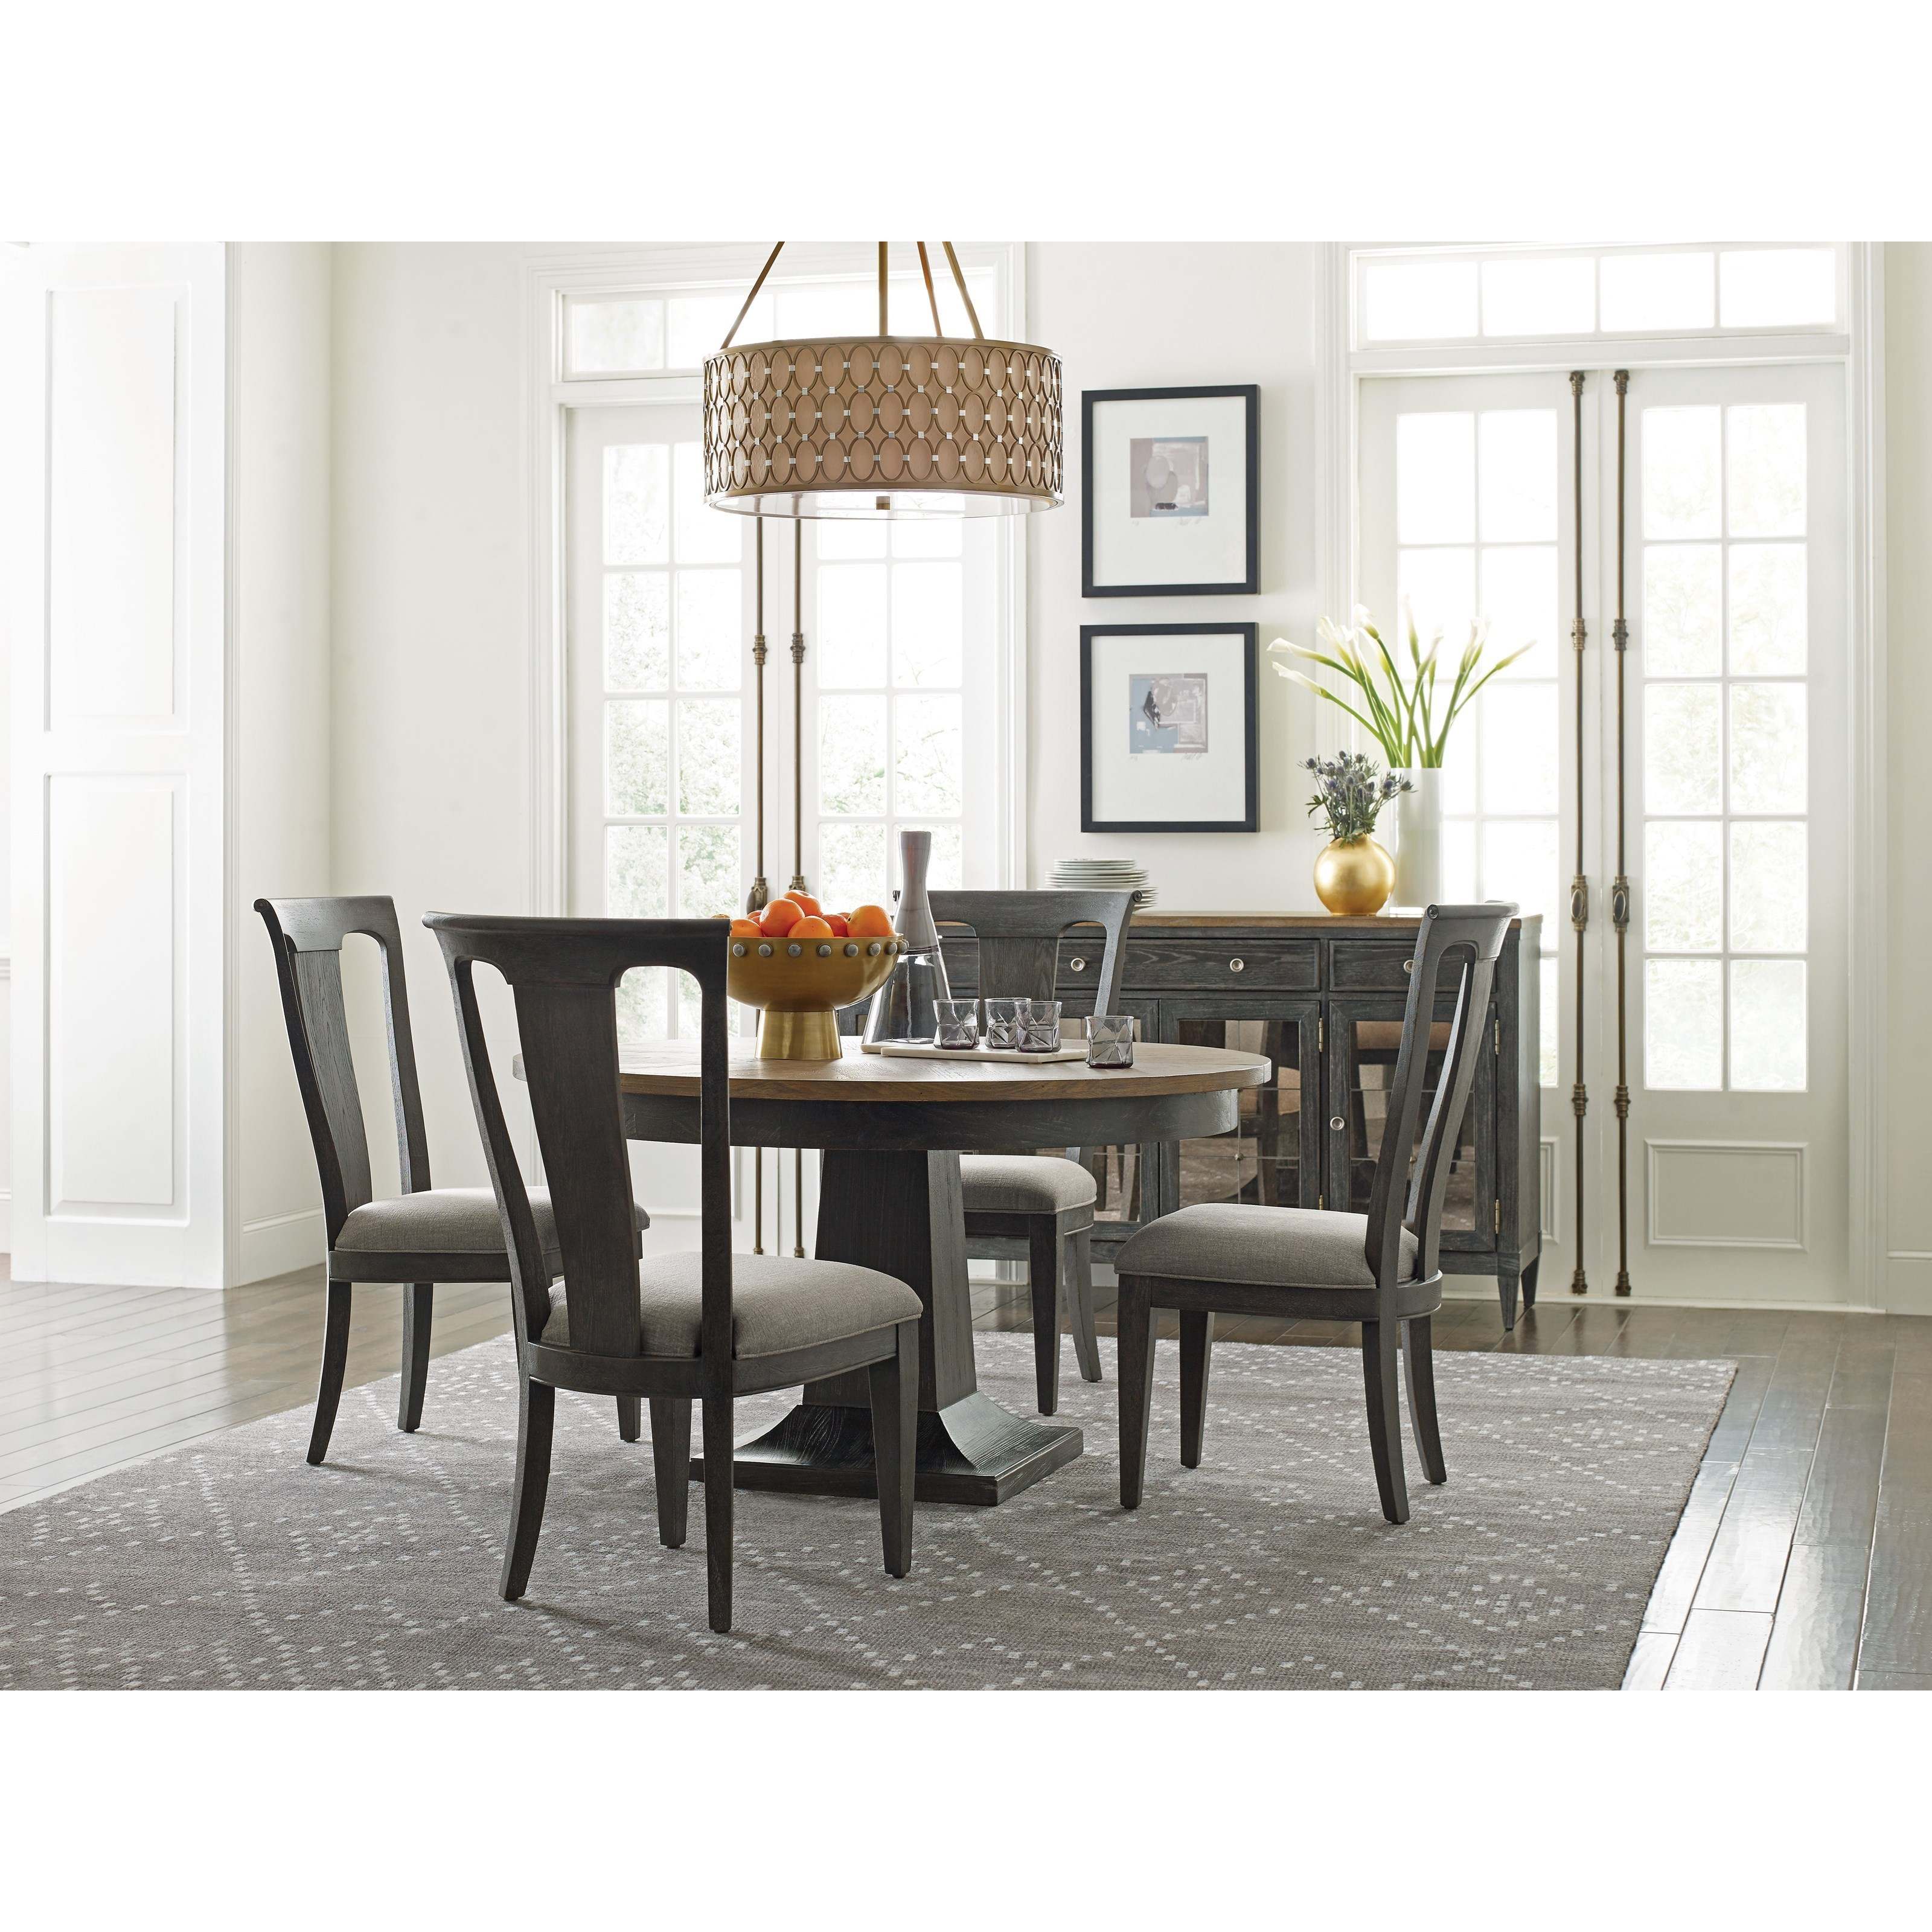 Ardennes Casual Dining Room Group by Living Trends at Sprintz Furniture